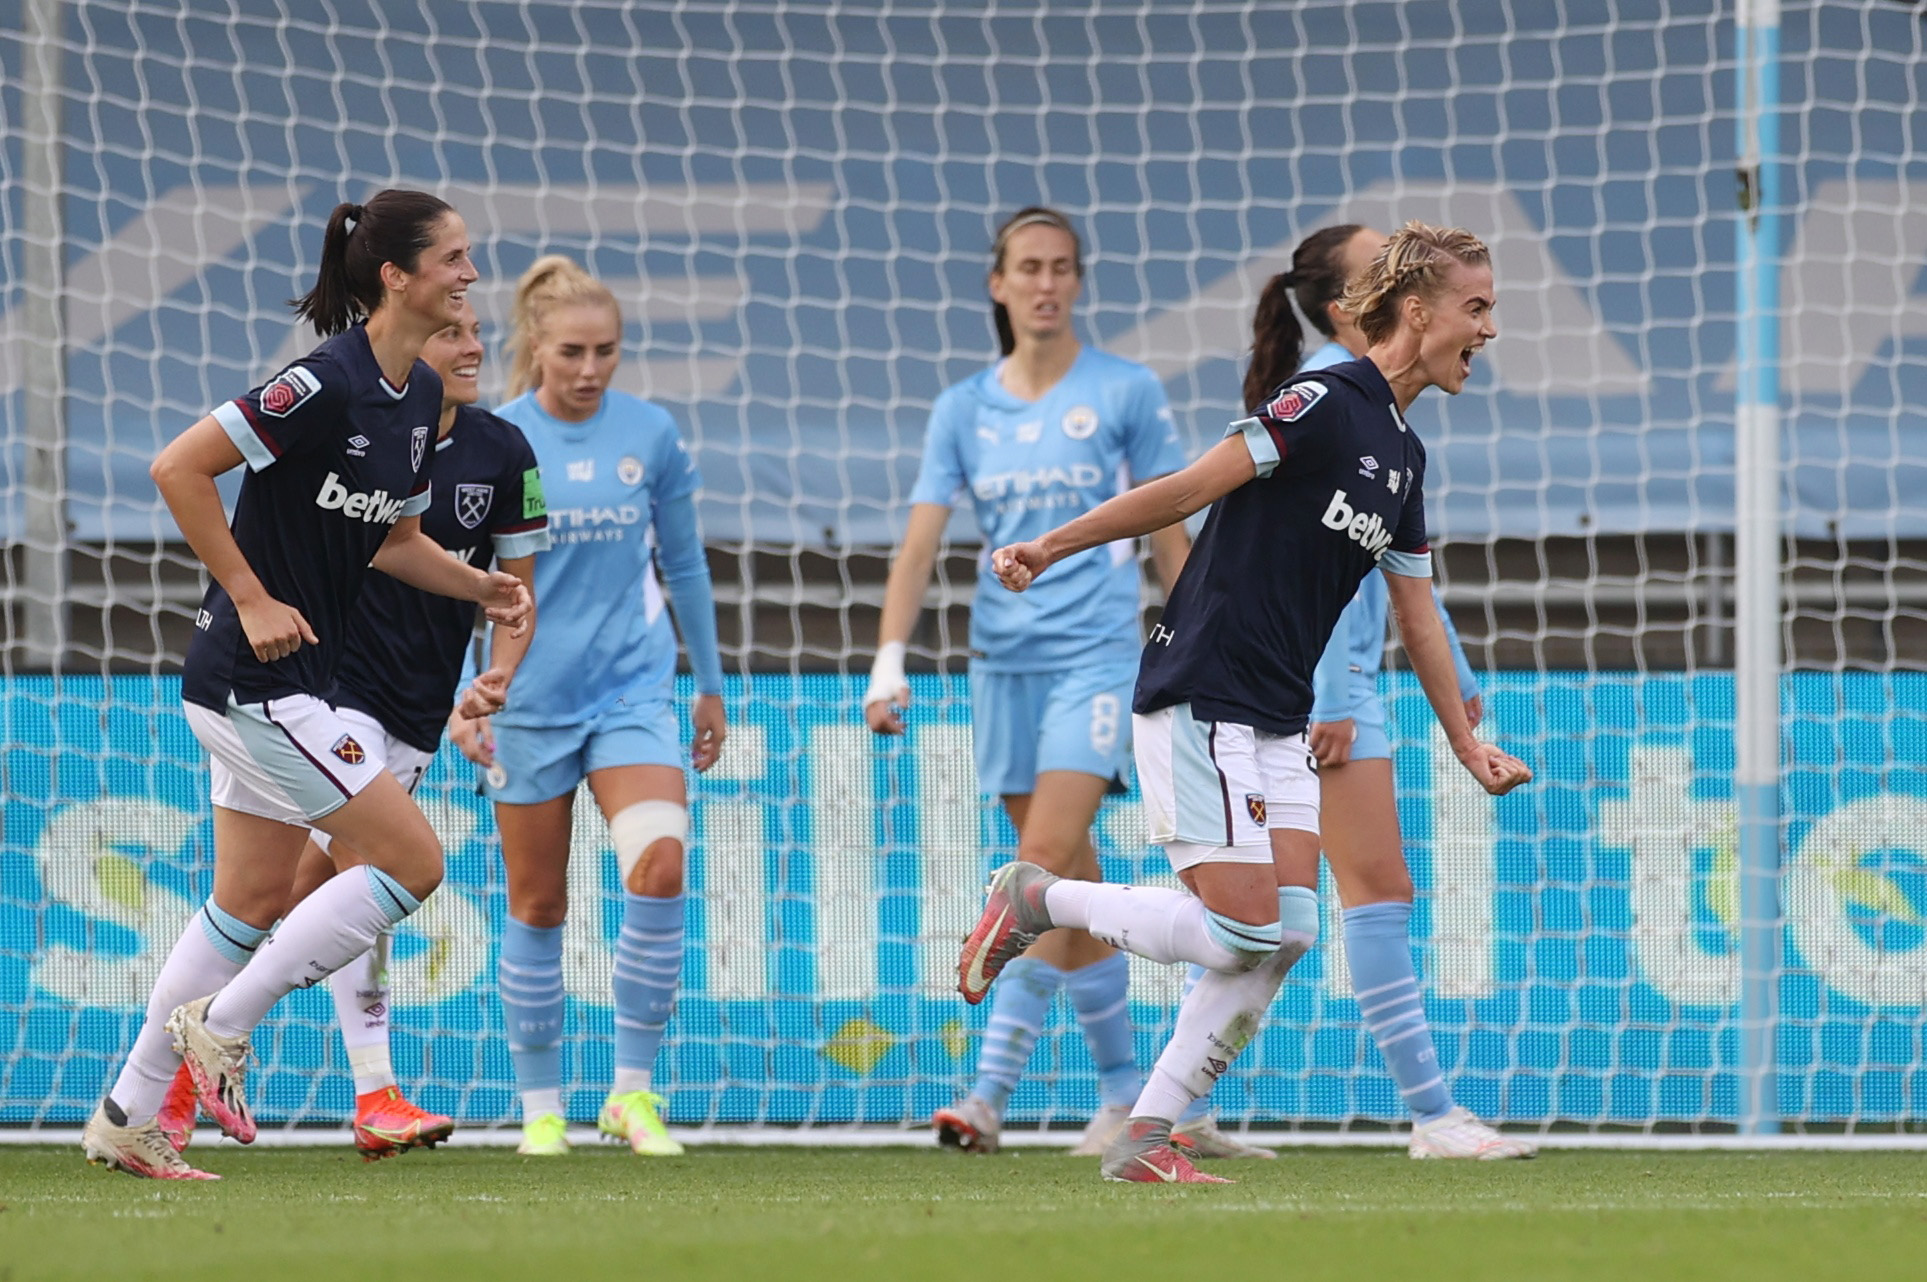 Soccer Football - Women's Super League - Manchester City v West Ham United - Manchester City Academy Stadium, Manchester, Britain - October 3, 2021 West Ham United's Dagny Brynjarsdottir celebrates scoring their first goal Action Images via Reuters/Lee Smith